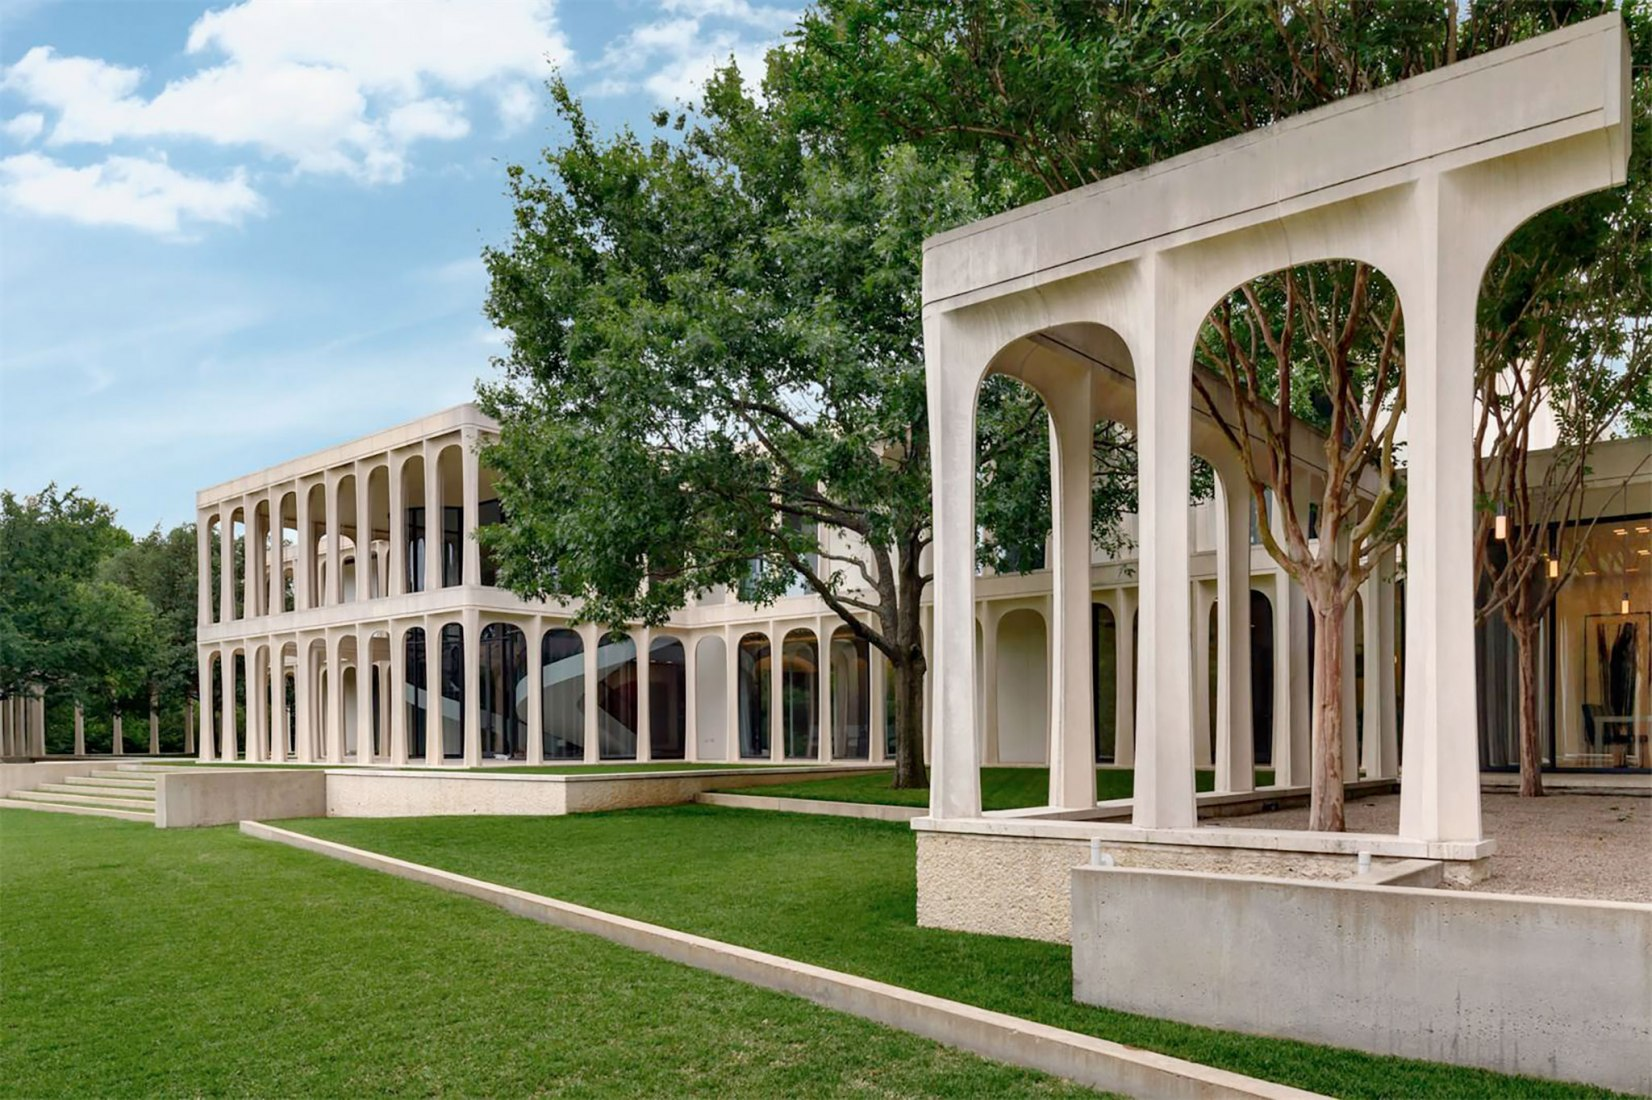 Philip Johnson's Beck House in Dallas. Photograph by Charles Davis, Smith-Photographer